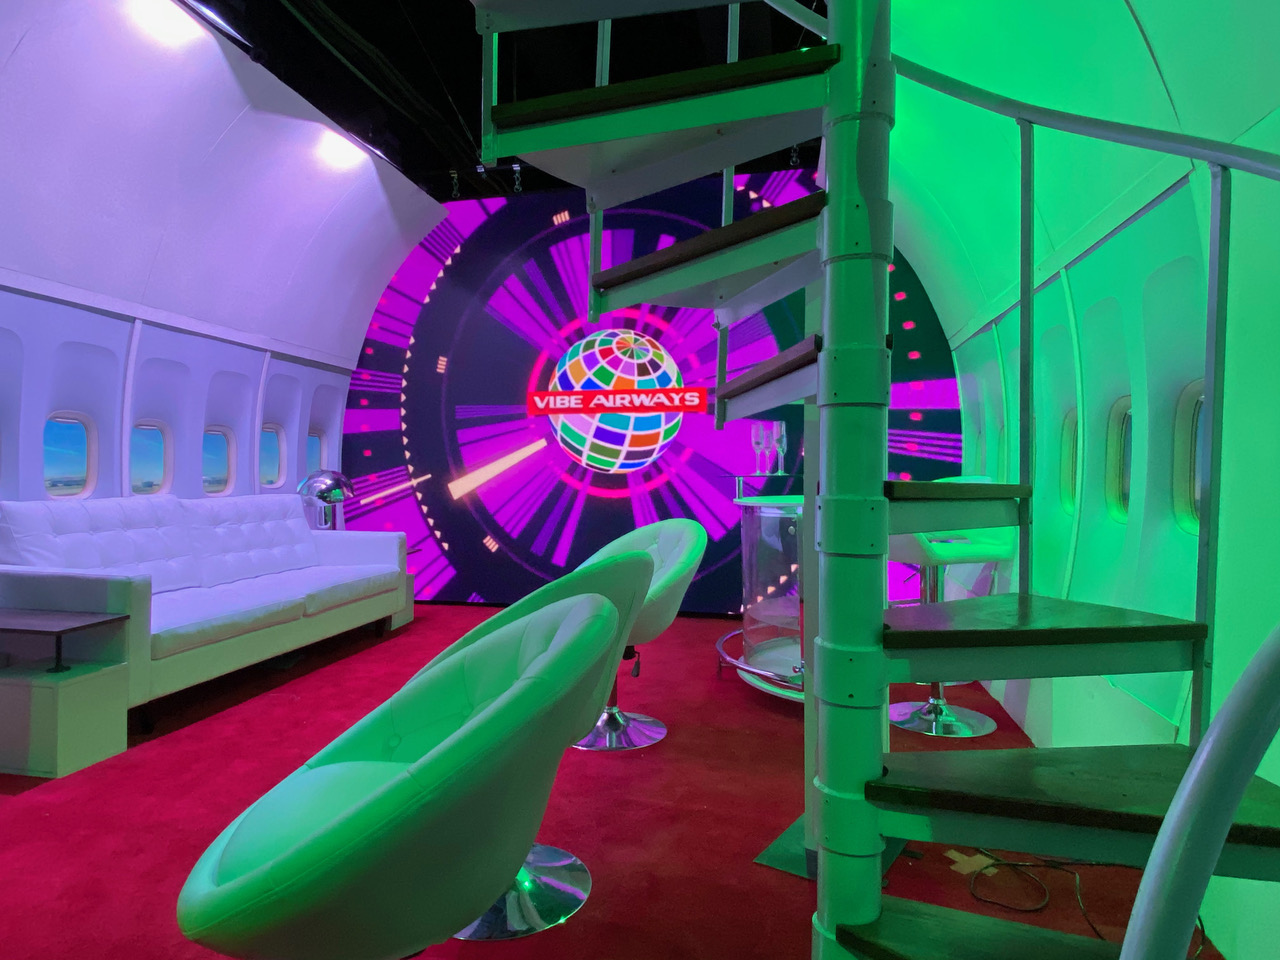 """""""Vibe Airways,"""" one of 13 themed rooms in the art installation """"Go Pixel Yourself."""" (Courtesy John Carter)"""